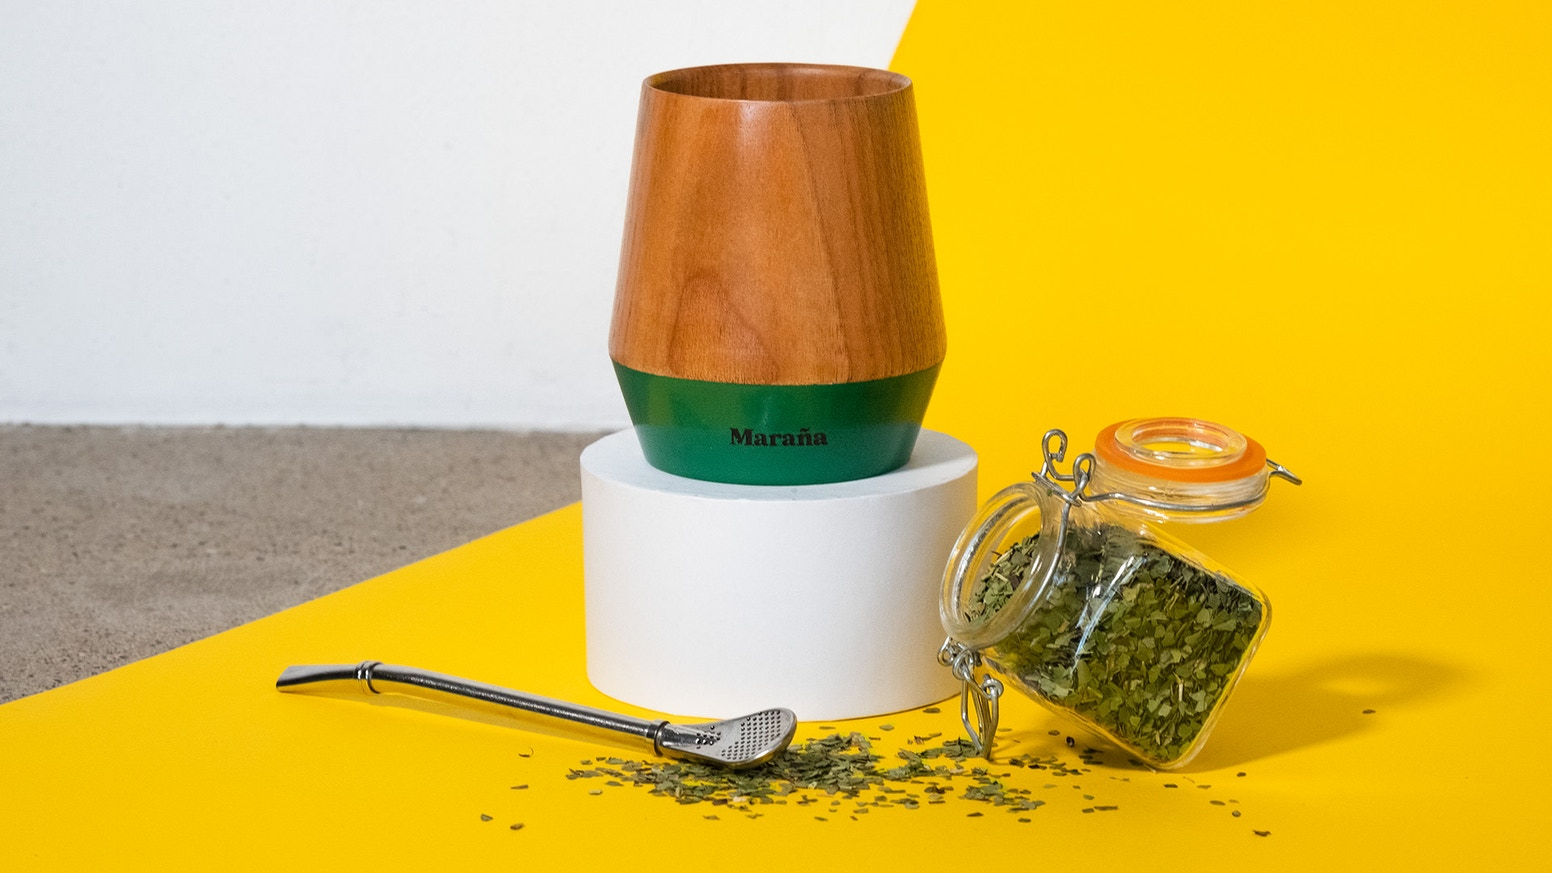 Our modern designed Yerba Mate Cup to let you enjoy your Yerba Mate in an authentic way.